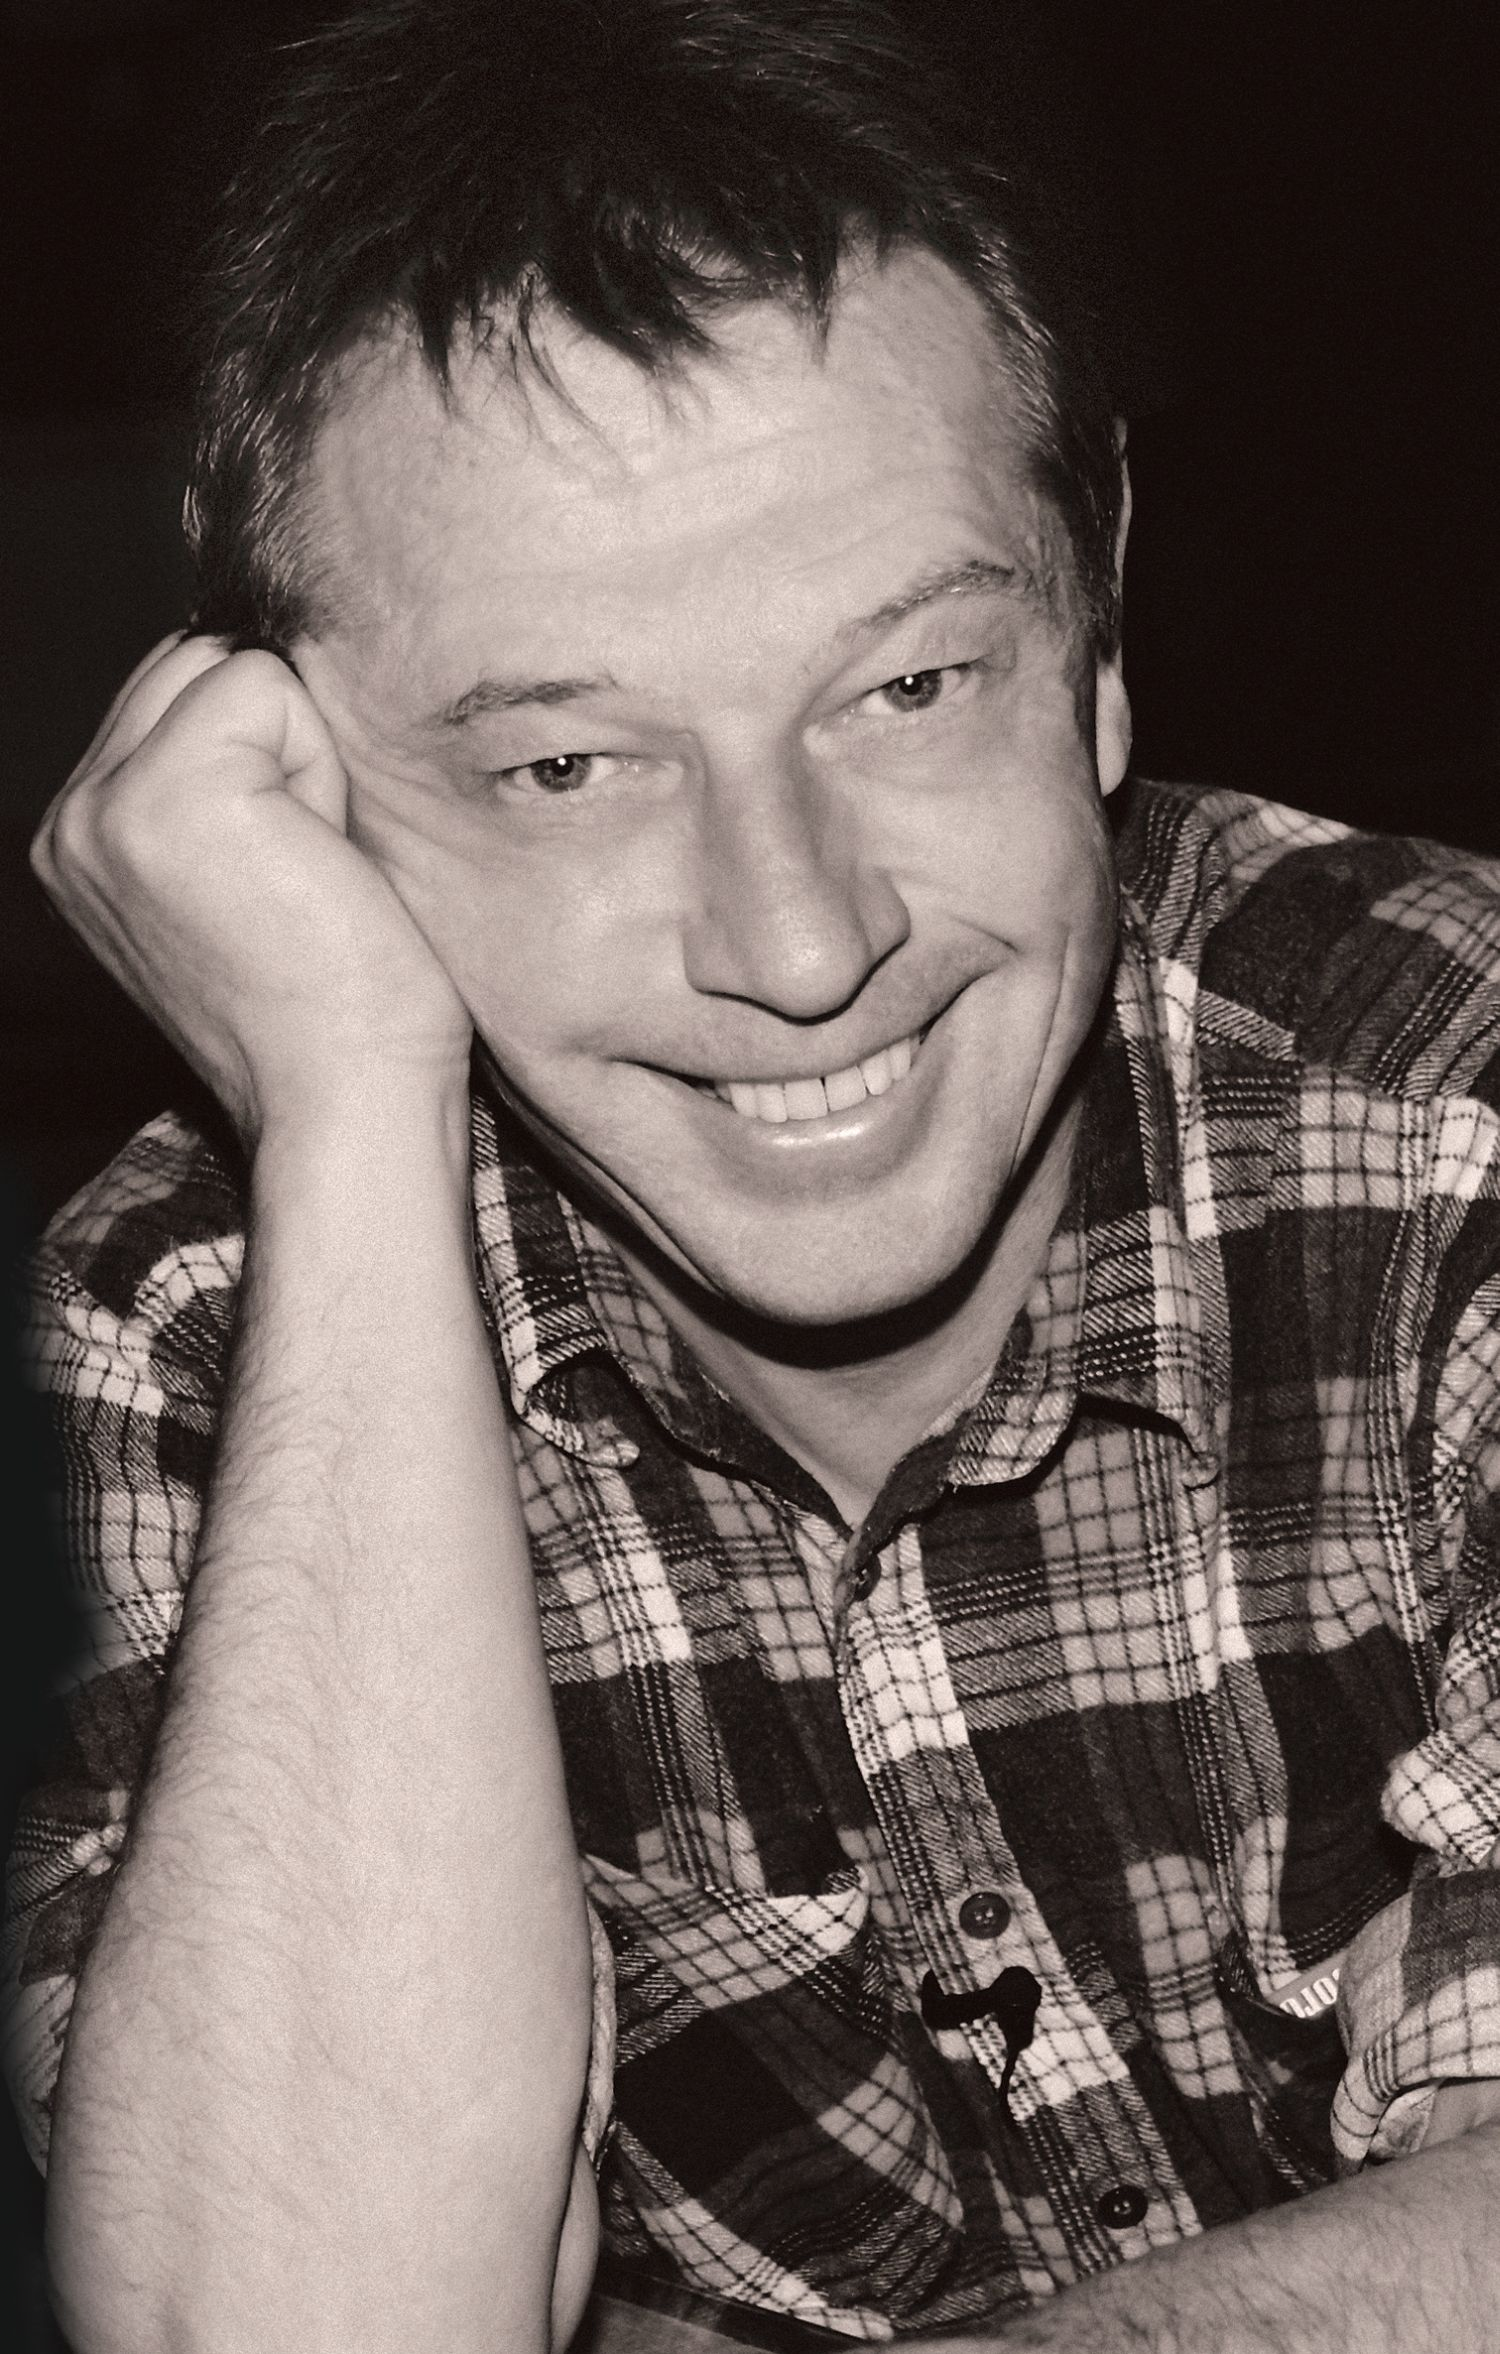 Andy Kershaw getting back in spin at Darwen gig